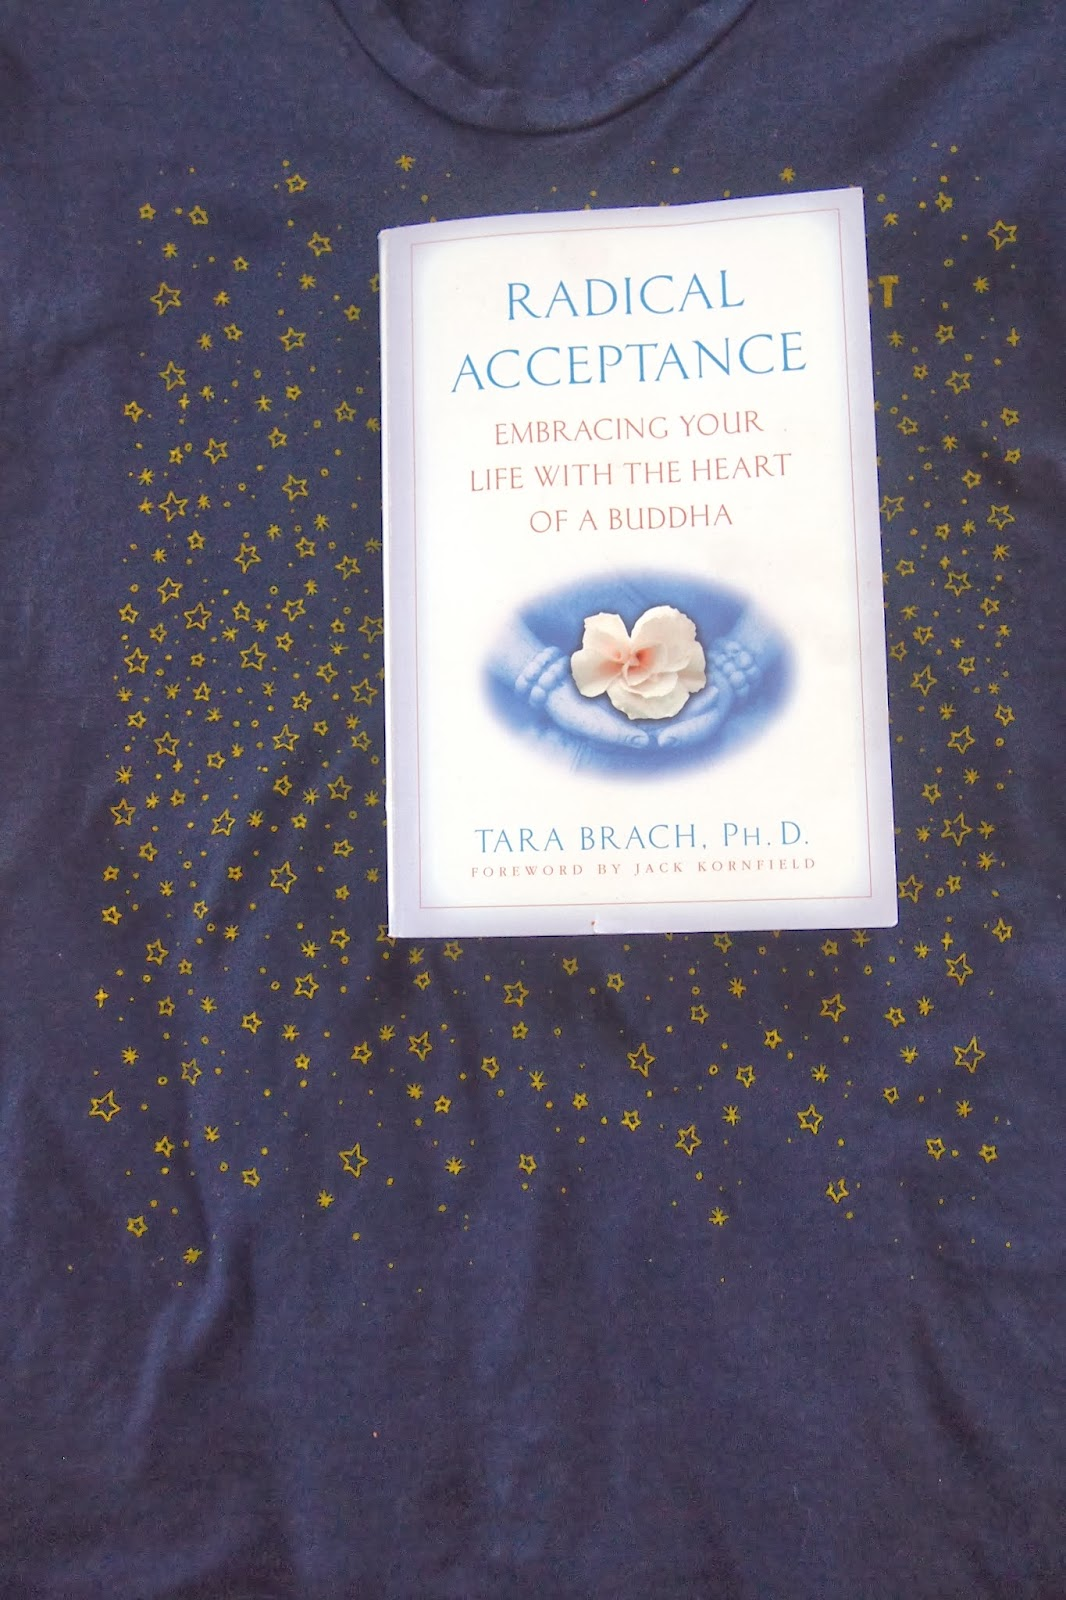 015 - Radical Acceptance Review